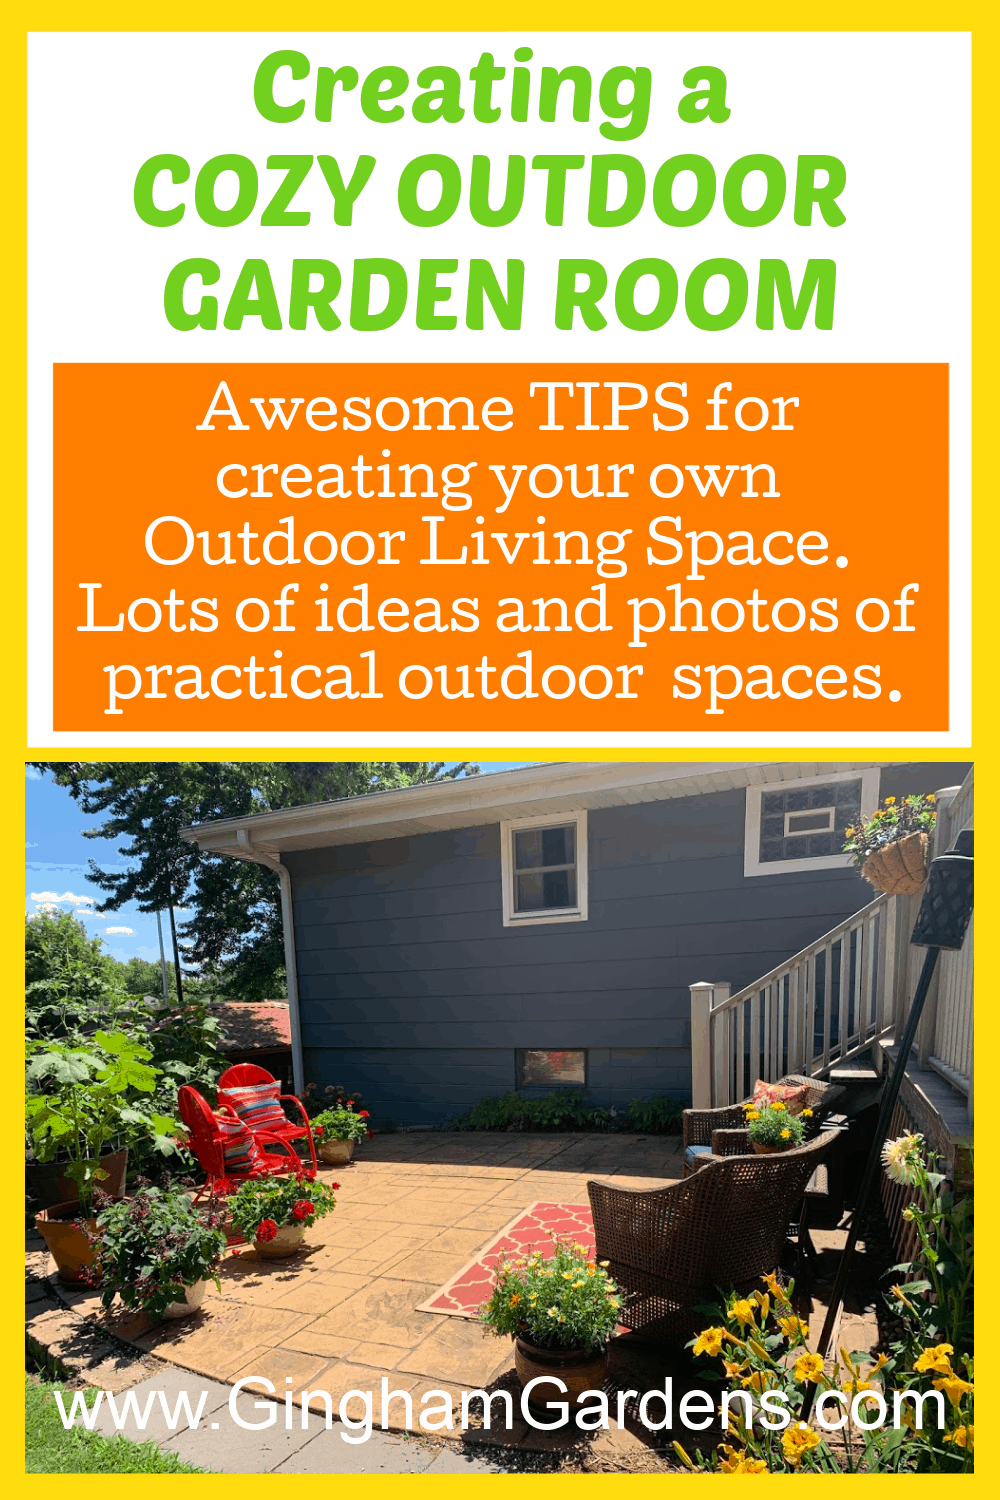 Image of a Patio with Plants and Furniture with text overlay - Creating a Cozy Outdoor Garden Room